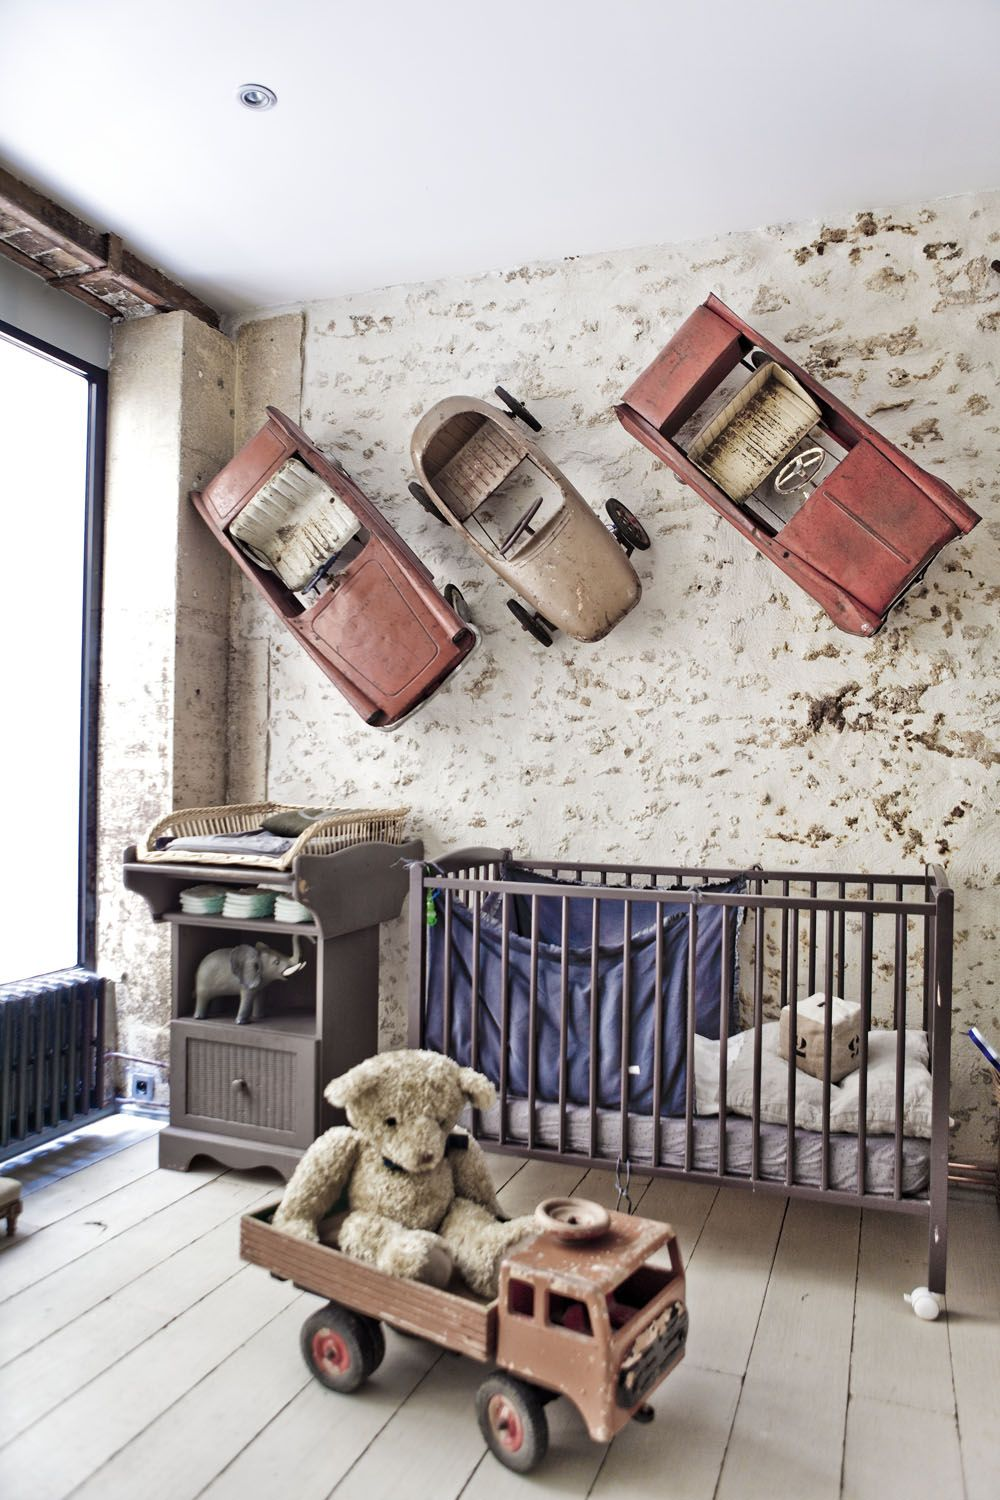 19 Vintage / Antique Style Nursery Room Decor Ideas for Boys